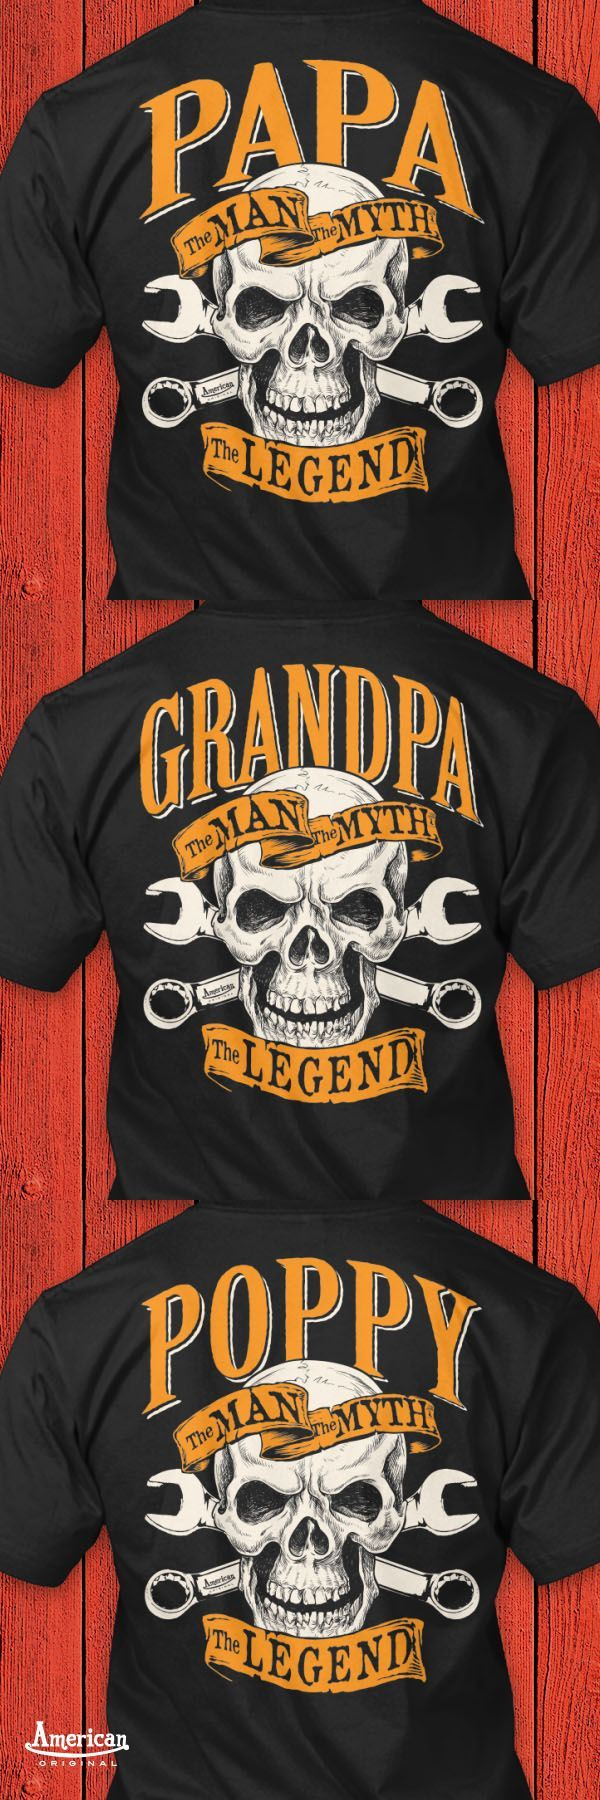 The Man The Myth The Legend tee's hoodies and V-necks just in time for Fathers Day. A sure hit for any Harley riding, wrench spinning, hot rod building grandfather. It won't matter if he's hanging out in the man cave or riding with friends he'll be loving that you call him the legend.